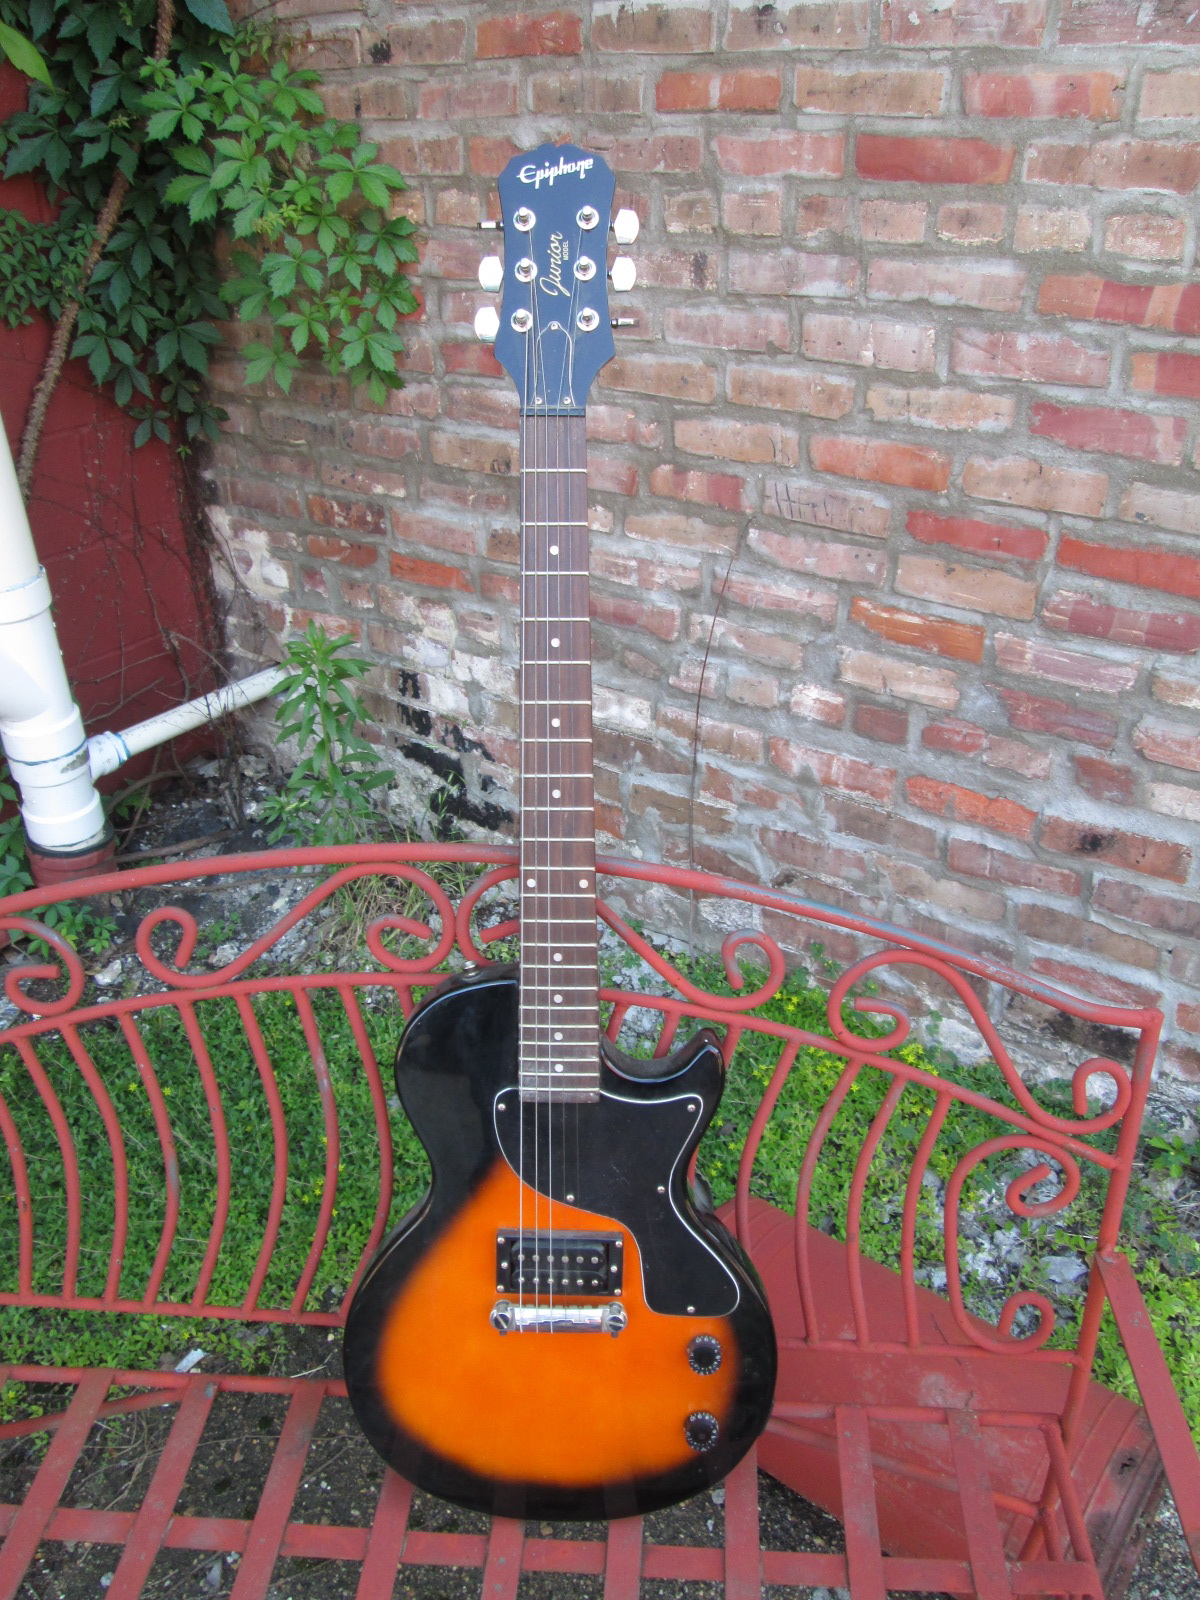 Small Town Music In House Inventory Home Page 2x Vols 1x Master Tone And Emg Ab On The Output Seemed Simple Epiphone Les Paul Junior Bolt Neck Electric Guitar This Could Use Some Detailed Cleaning But Overall Nice W Electronics Sounding Great Working Well